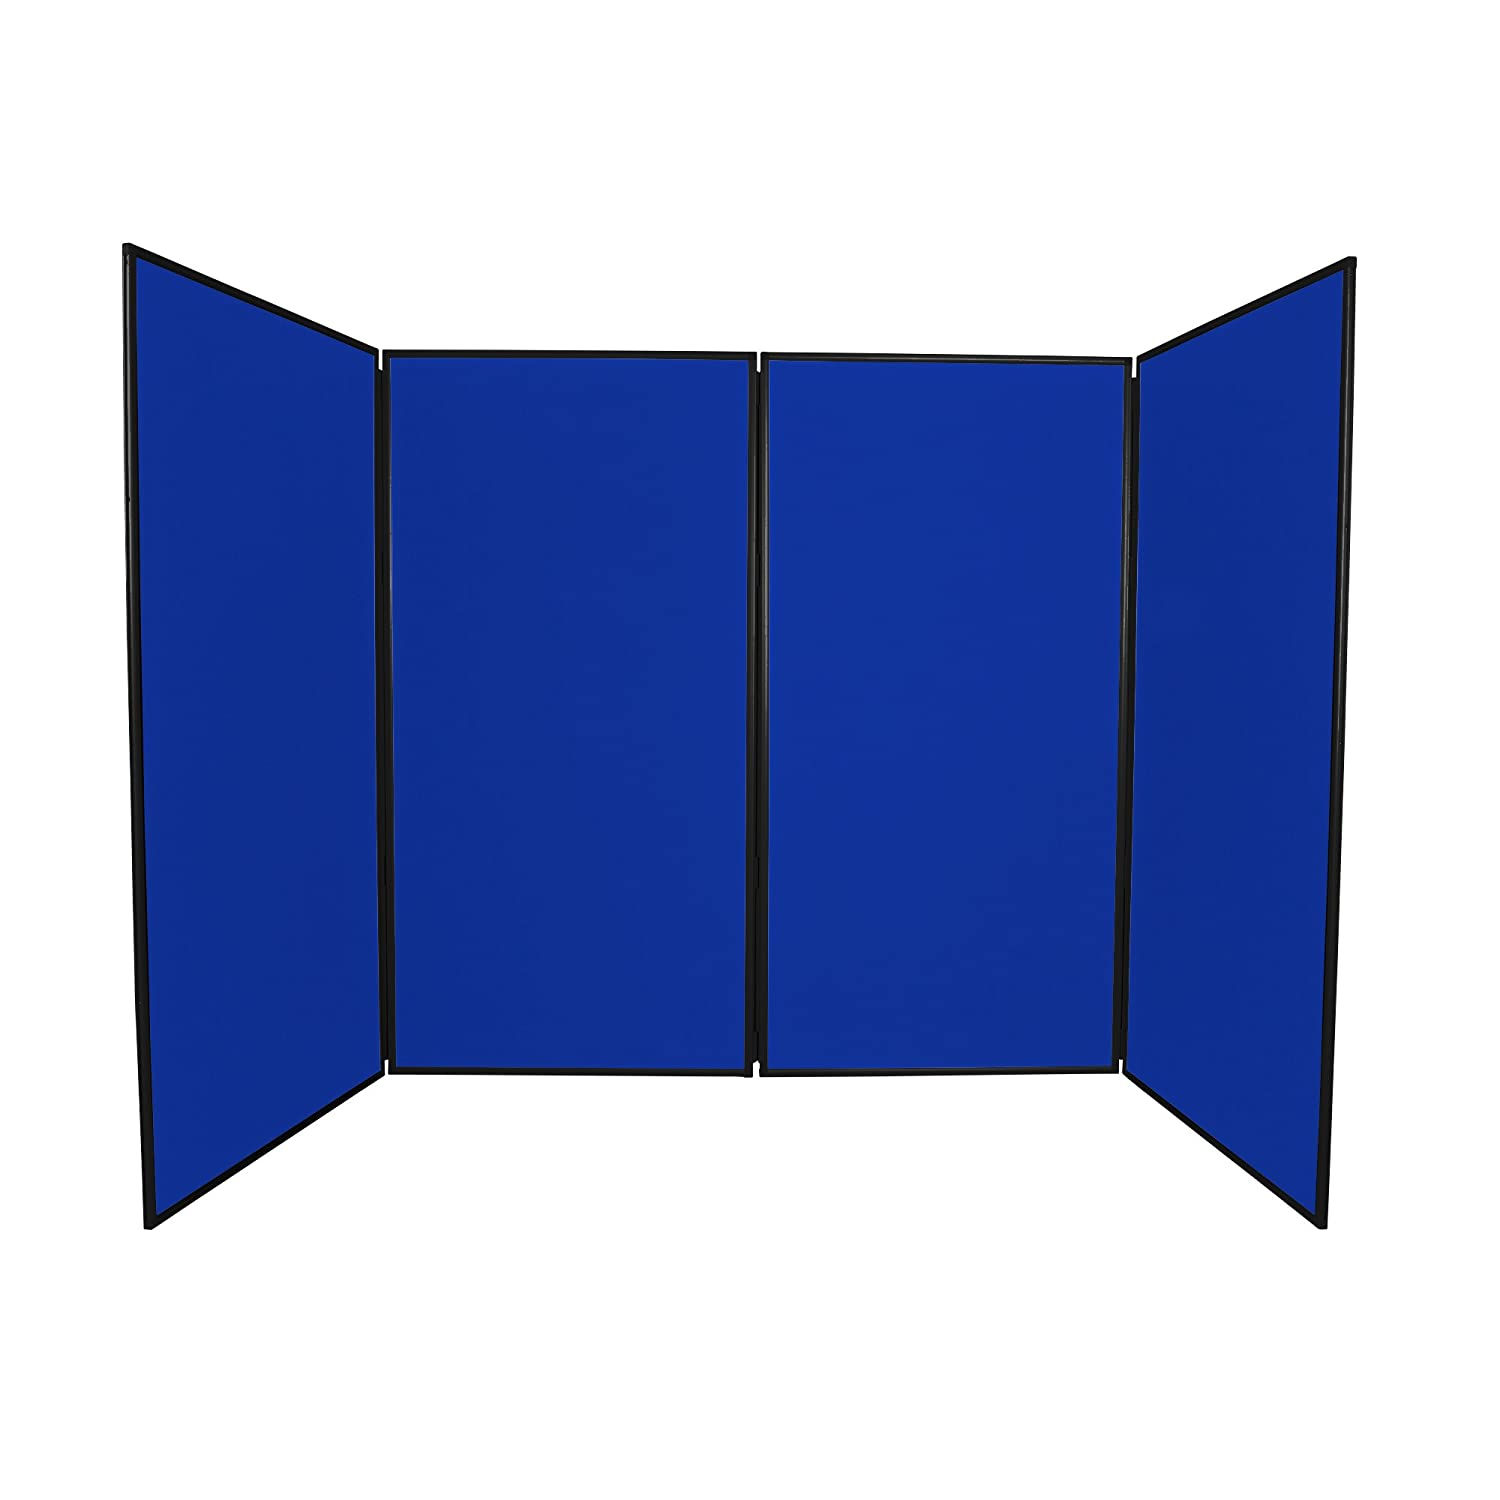 Panelwarehouse Jumbo Display Board Stand, Black Frame (Black, 2 Panel) - 3 Sizes & 8 Colours